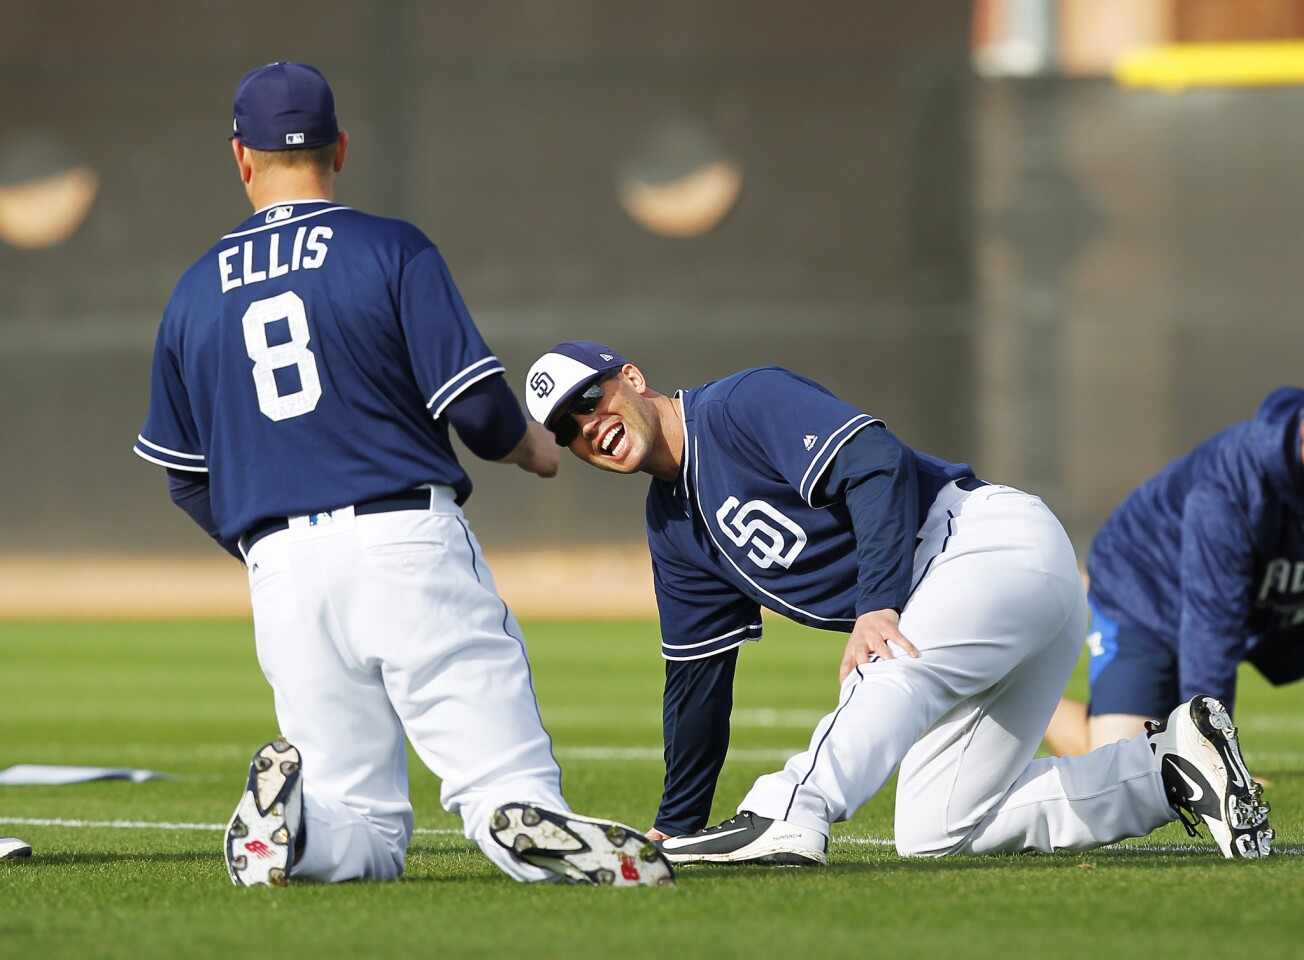 San Diego Padres pitcher Clayton Richard and catcher A.J. Ellis share a laugh during a spring training practice in Peoria on Feb. 19, 2018. (Photo by K.C. Alfred/ San Diego Union -Tribune)